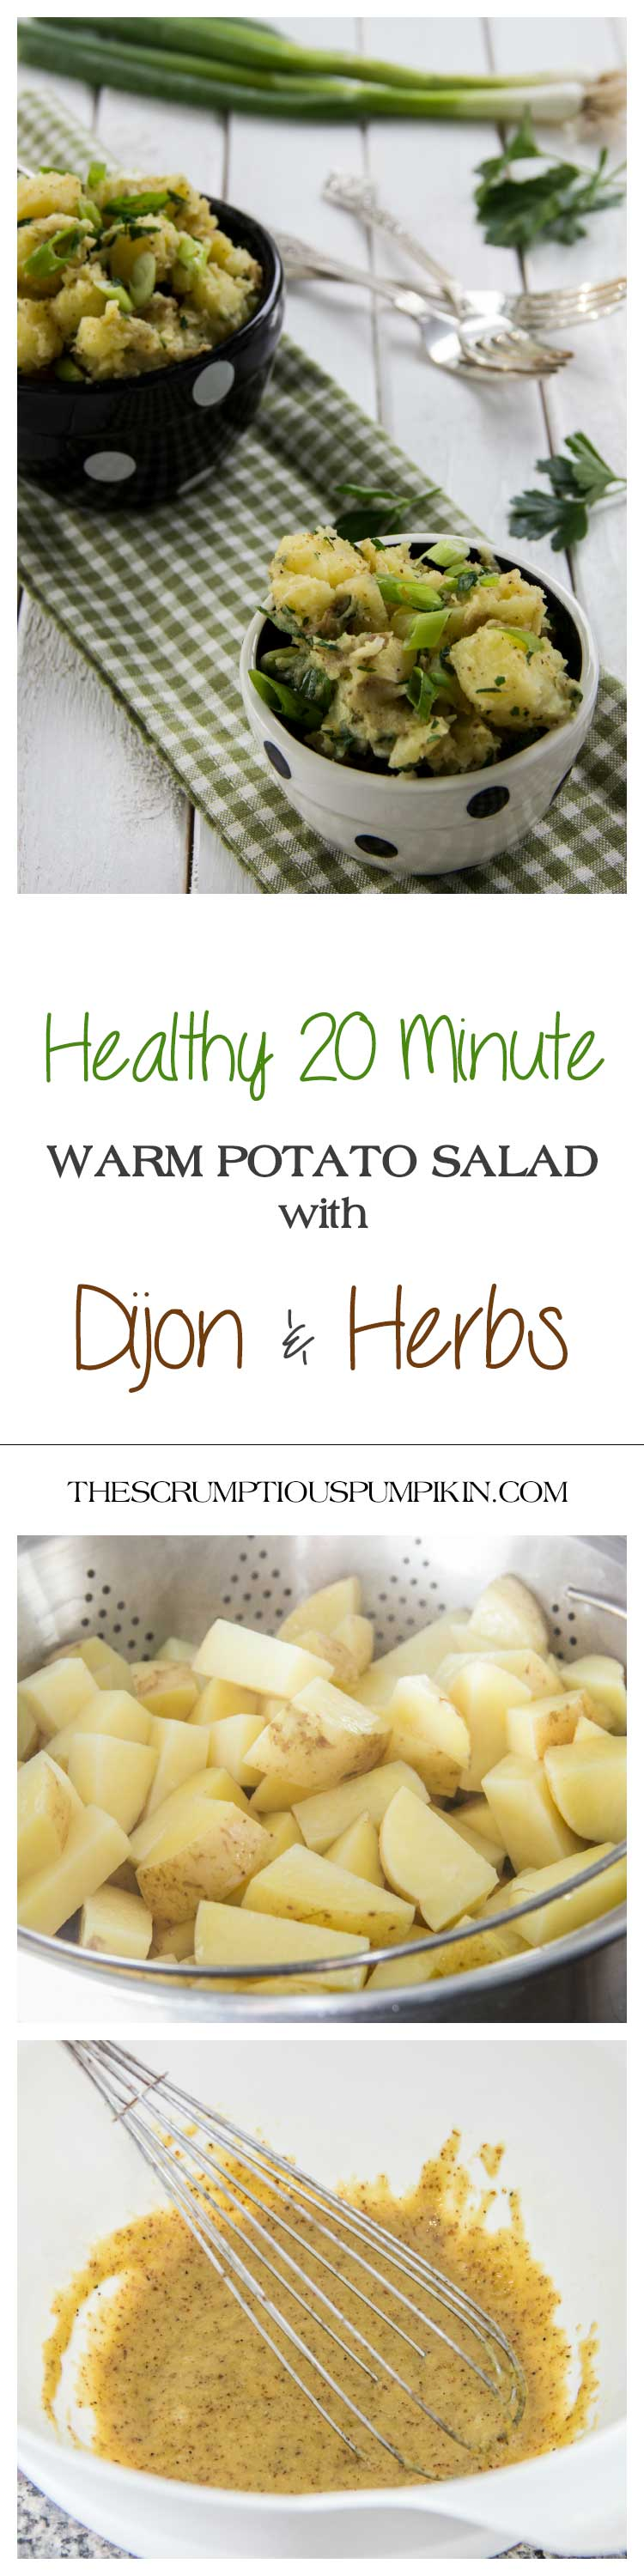 Healthy-20-Minute-Warm-Potato-Salad-with-Dijon-and-Herbs